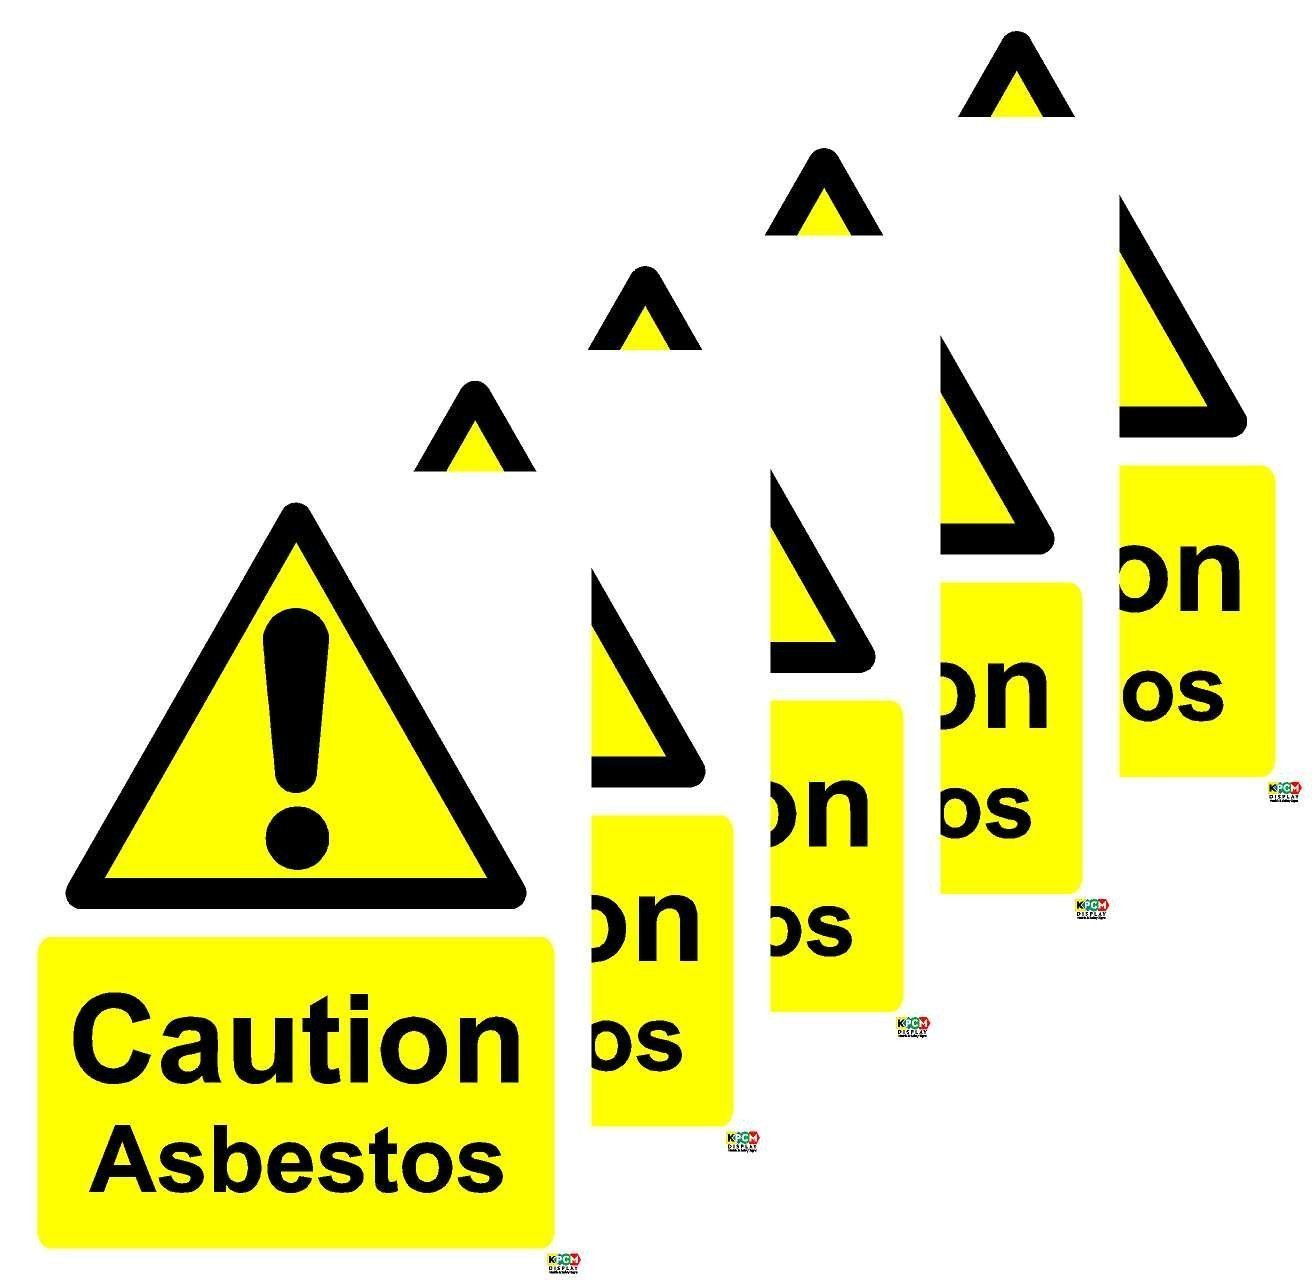 Self adhesive stickers 70mm x 50mm Caution Asbestos Safety Sign PACK OF 5 STICKERS